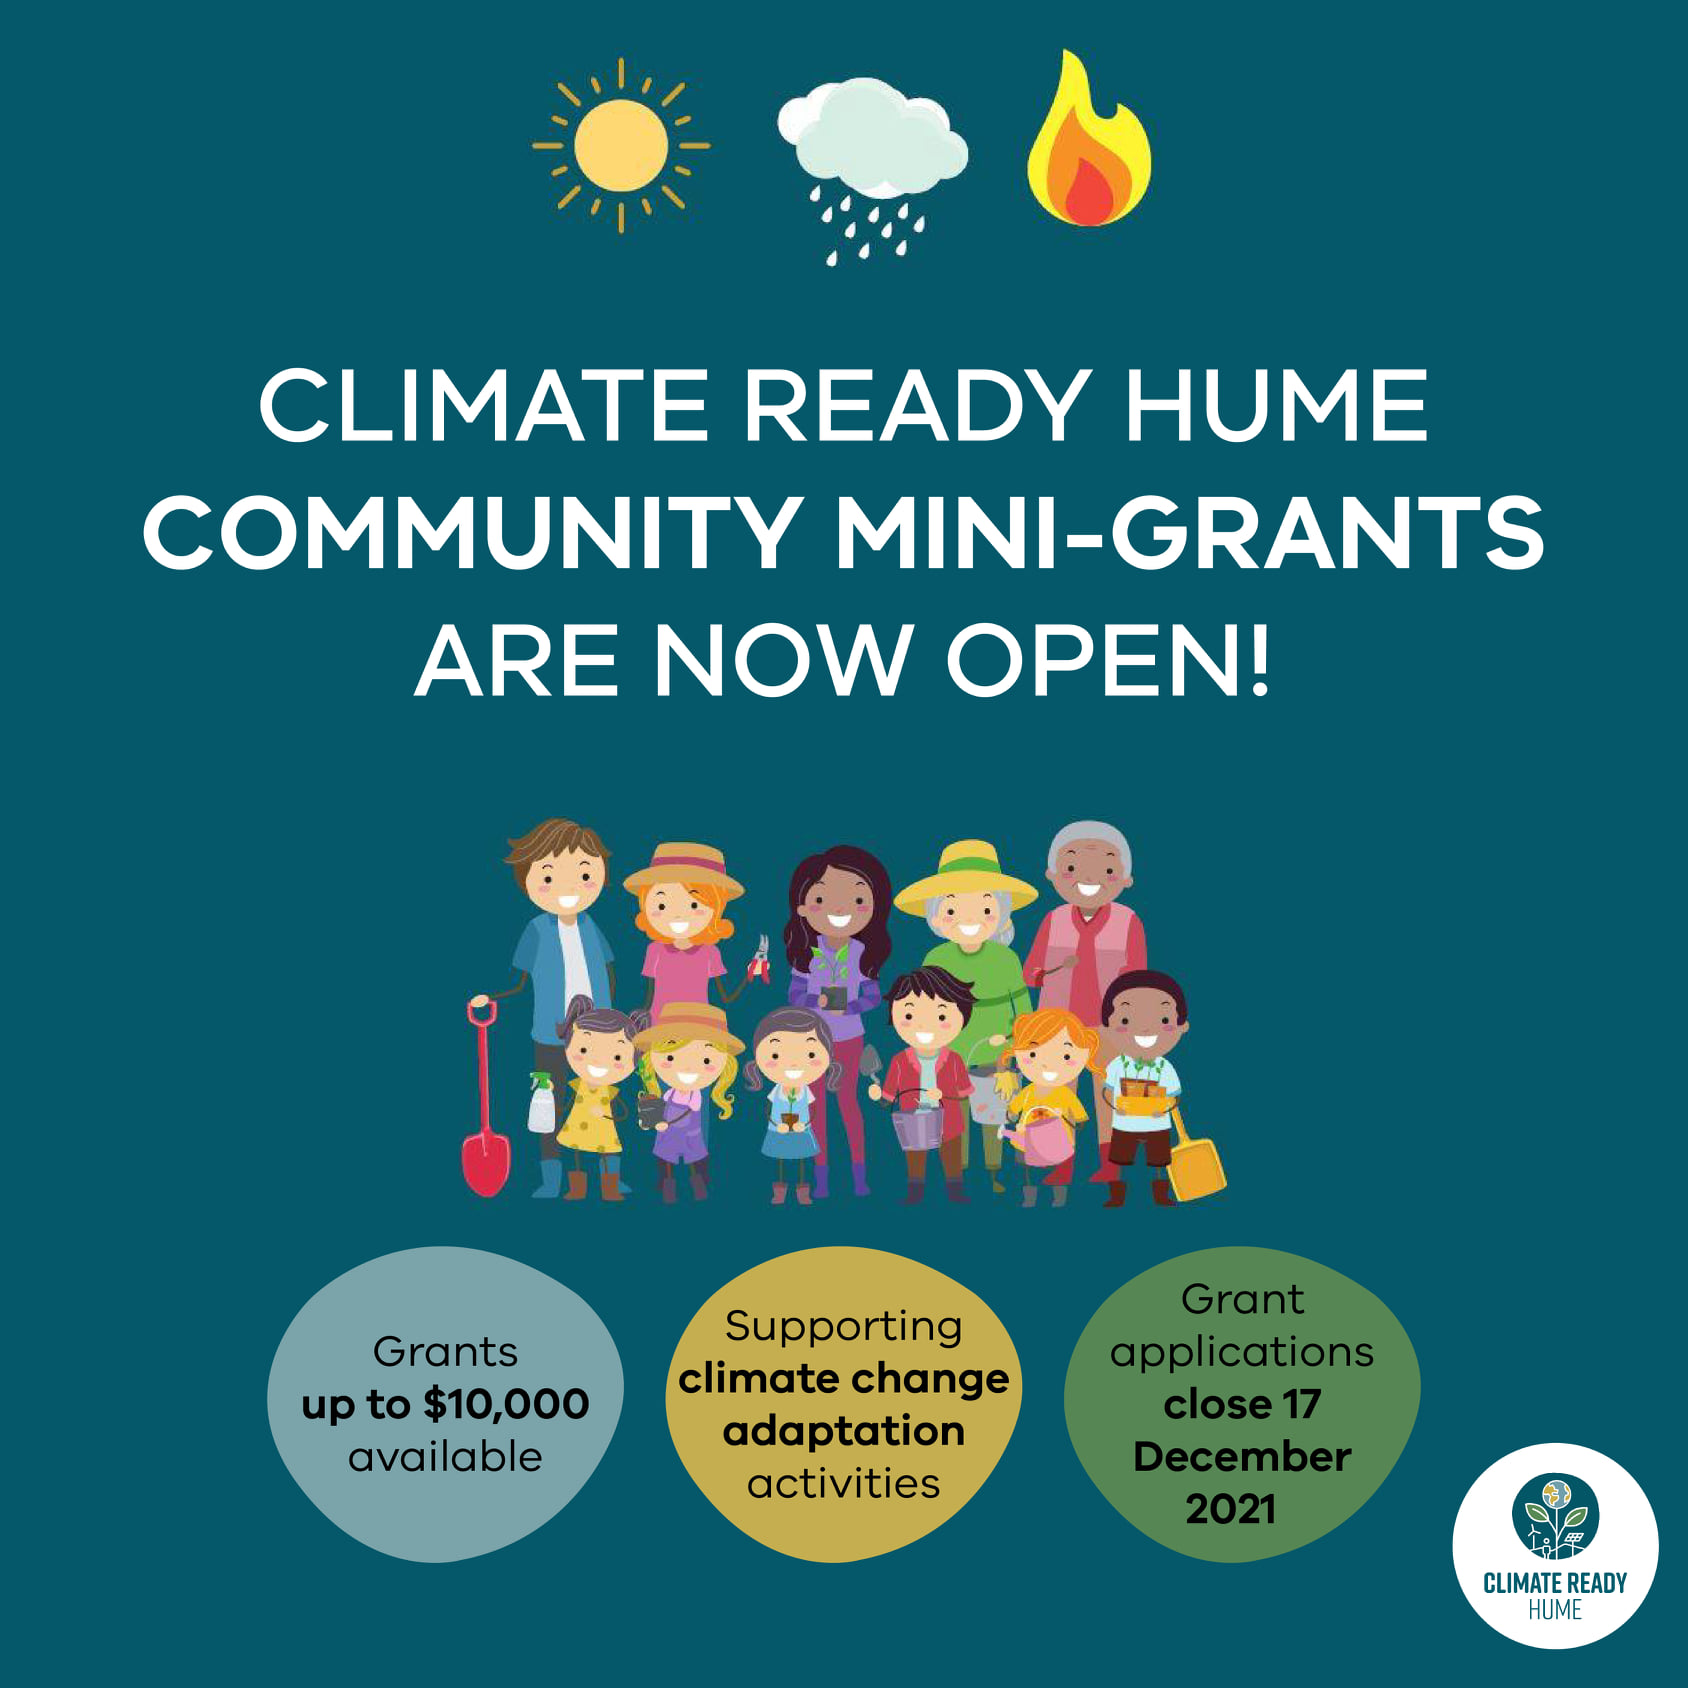 Climate Ready Hume Community Mini-Grants are now open! Picture